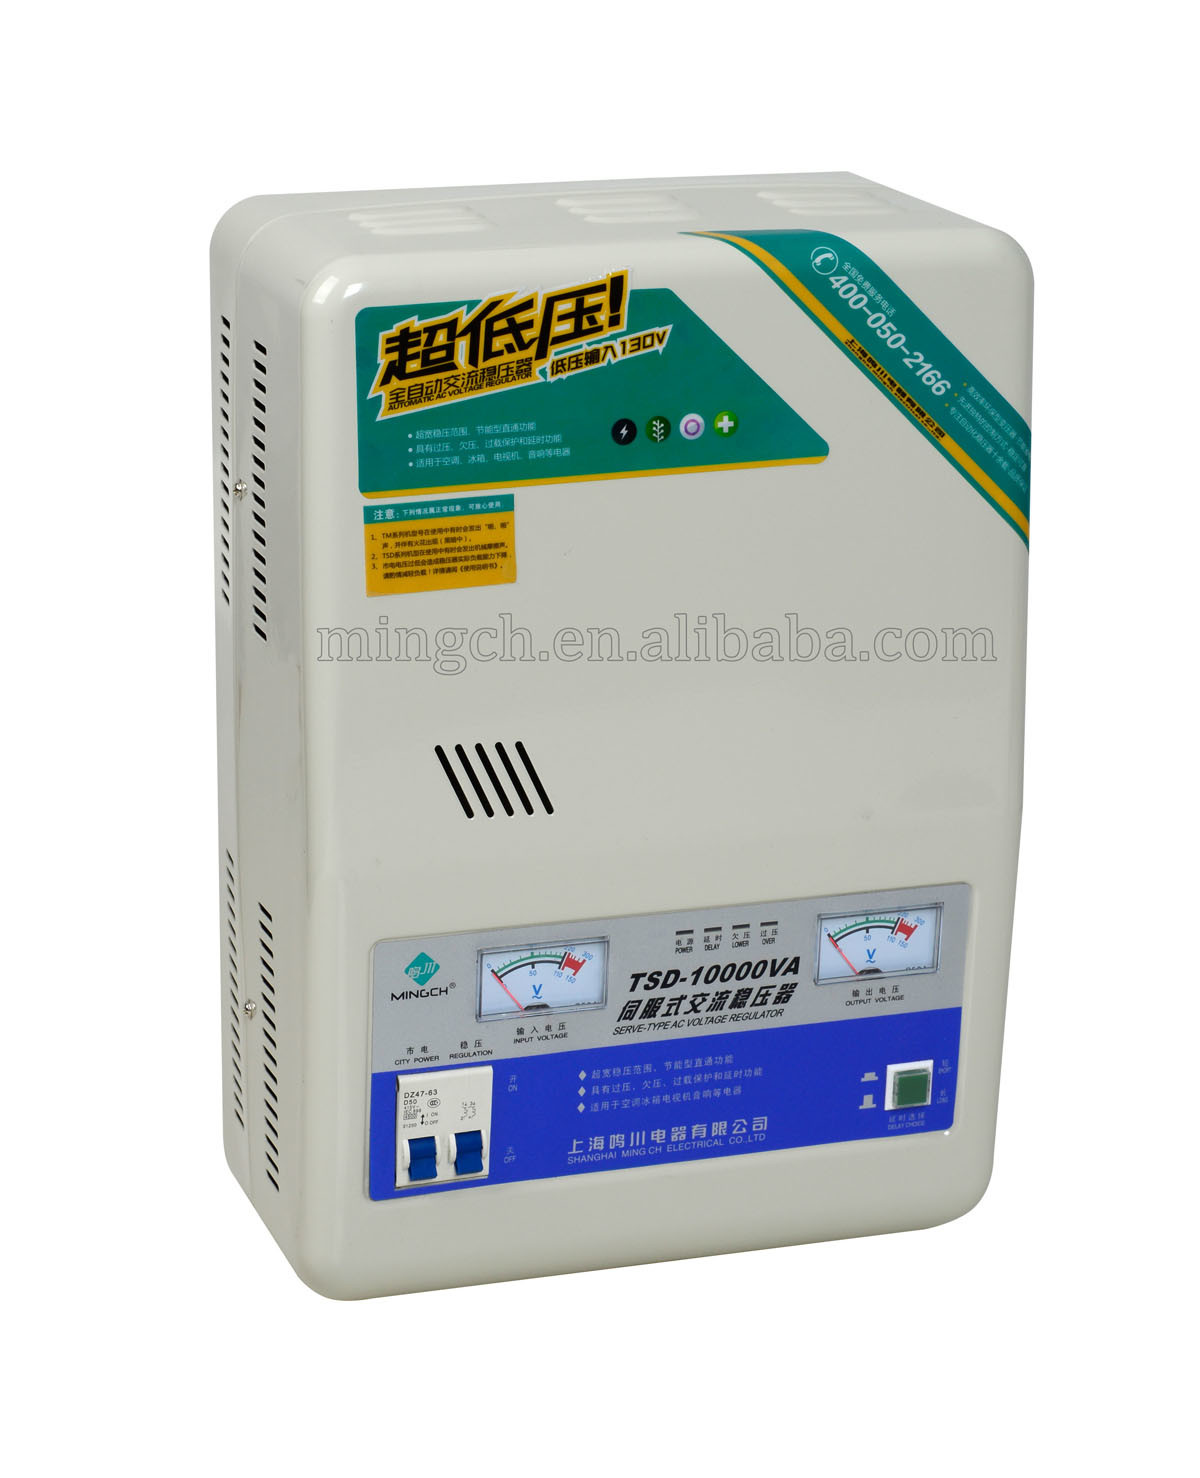 China Customed Tsd 10k Single Phase Servo Type High Precision Fully Of Automatic Voltage Control And Regulation Its Input Regulator Stabilizer